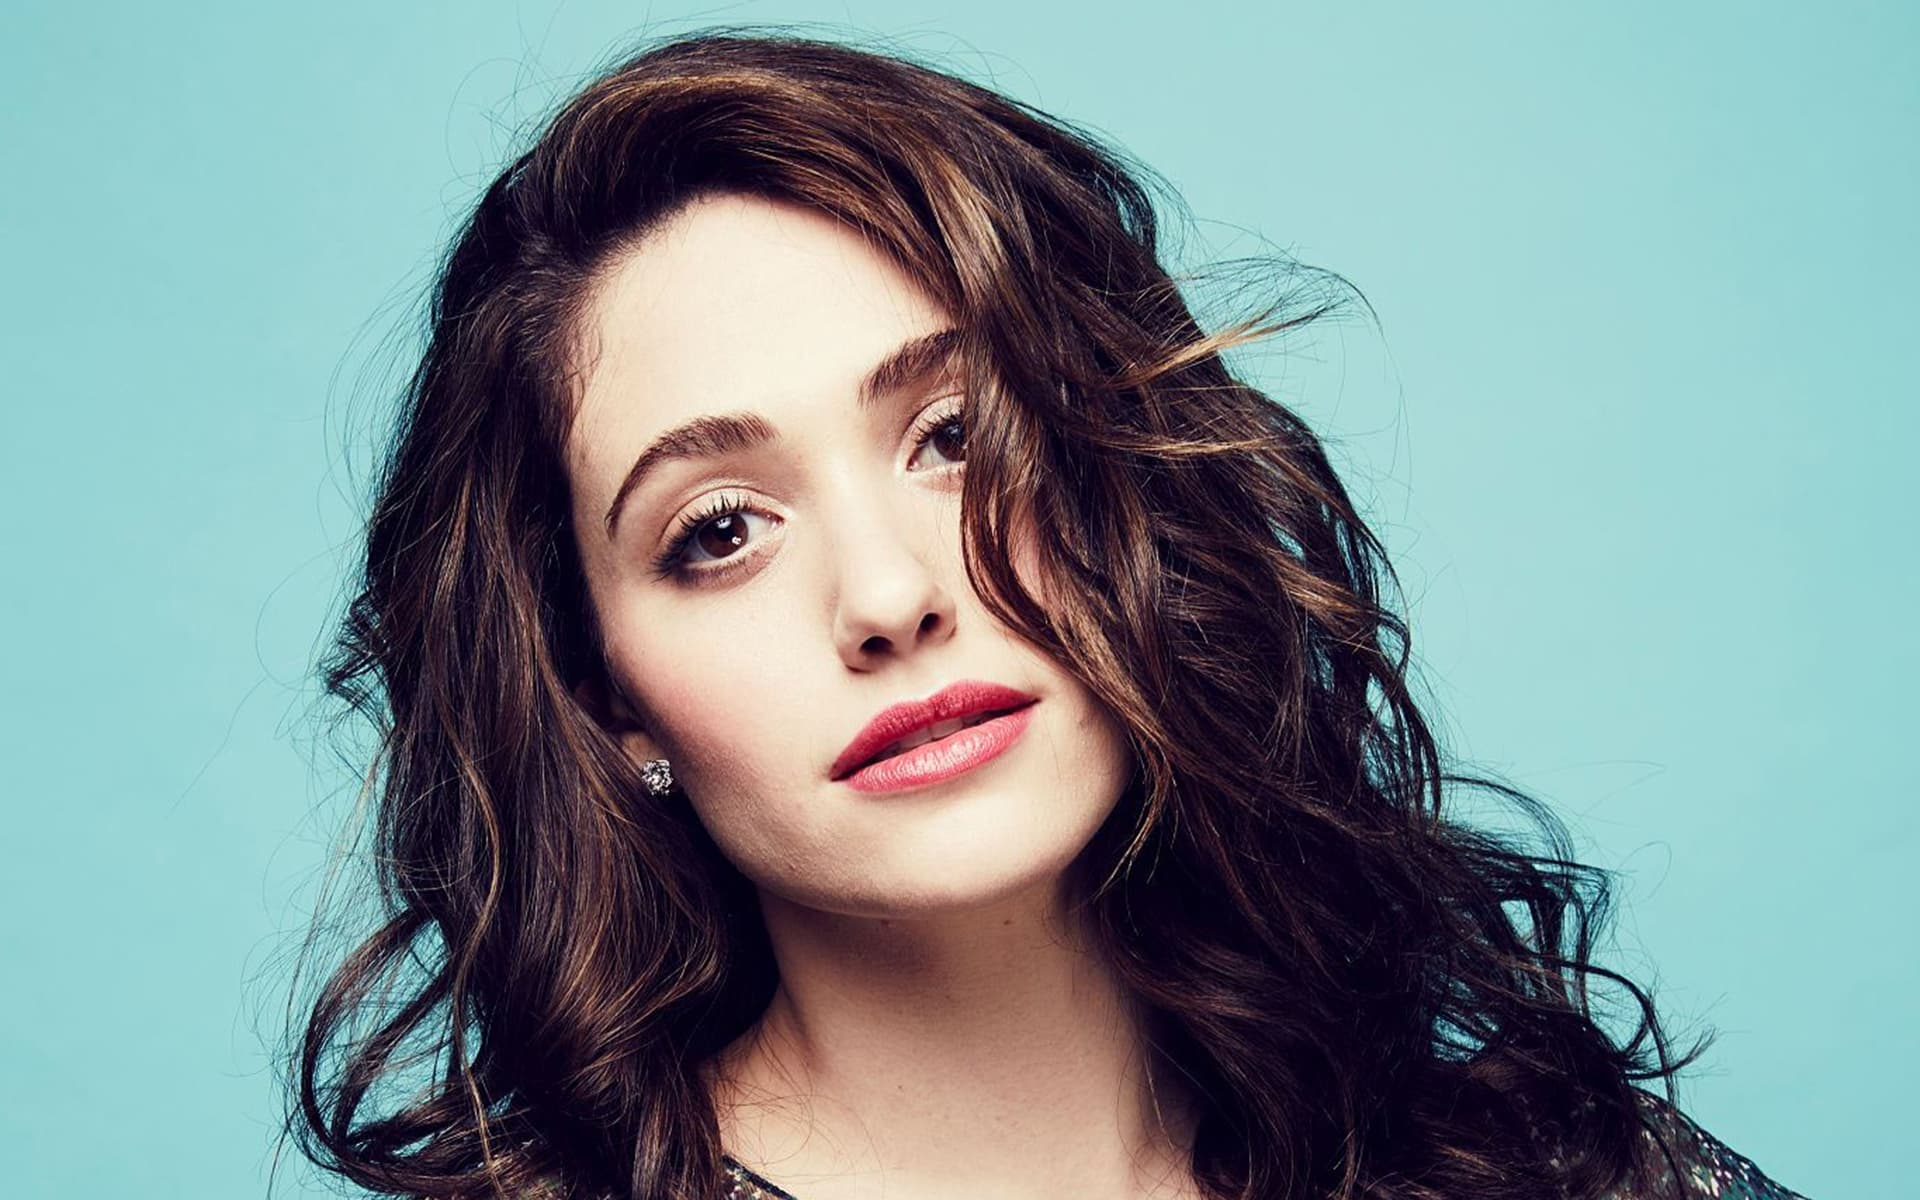 4k Resolution 4k Car Wallpaper 19 Emmy Rossum Wallpapers High Quality Resolution Download